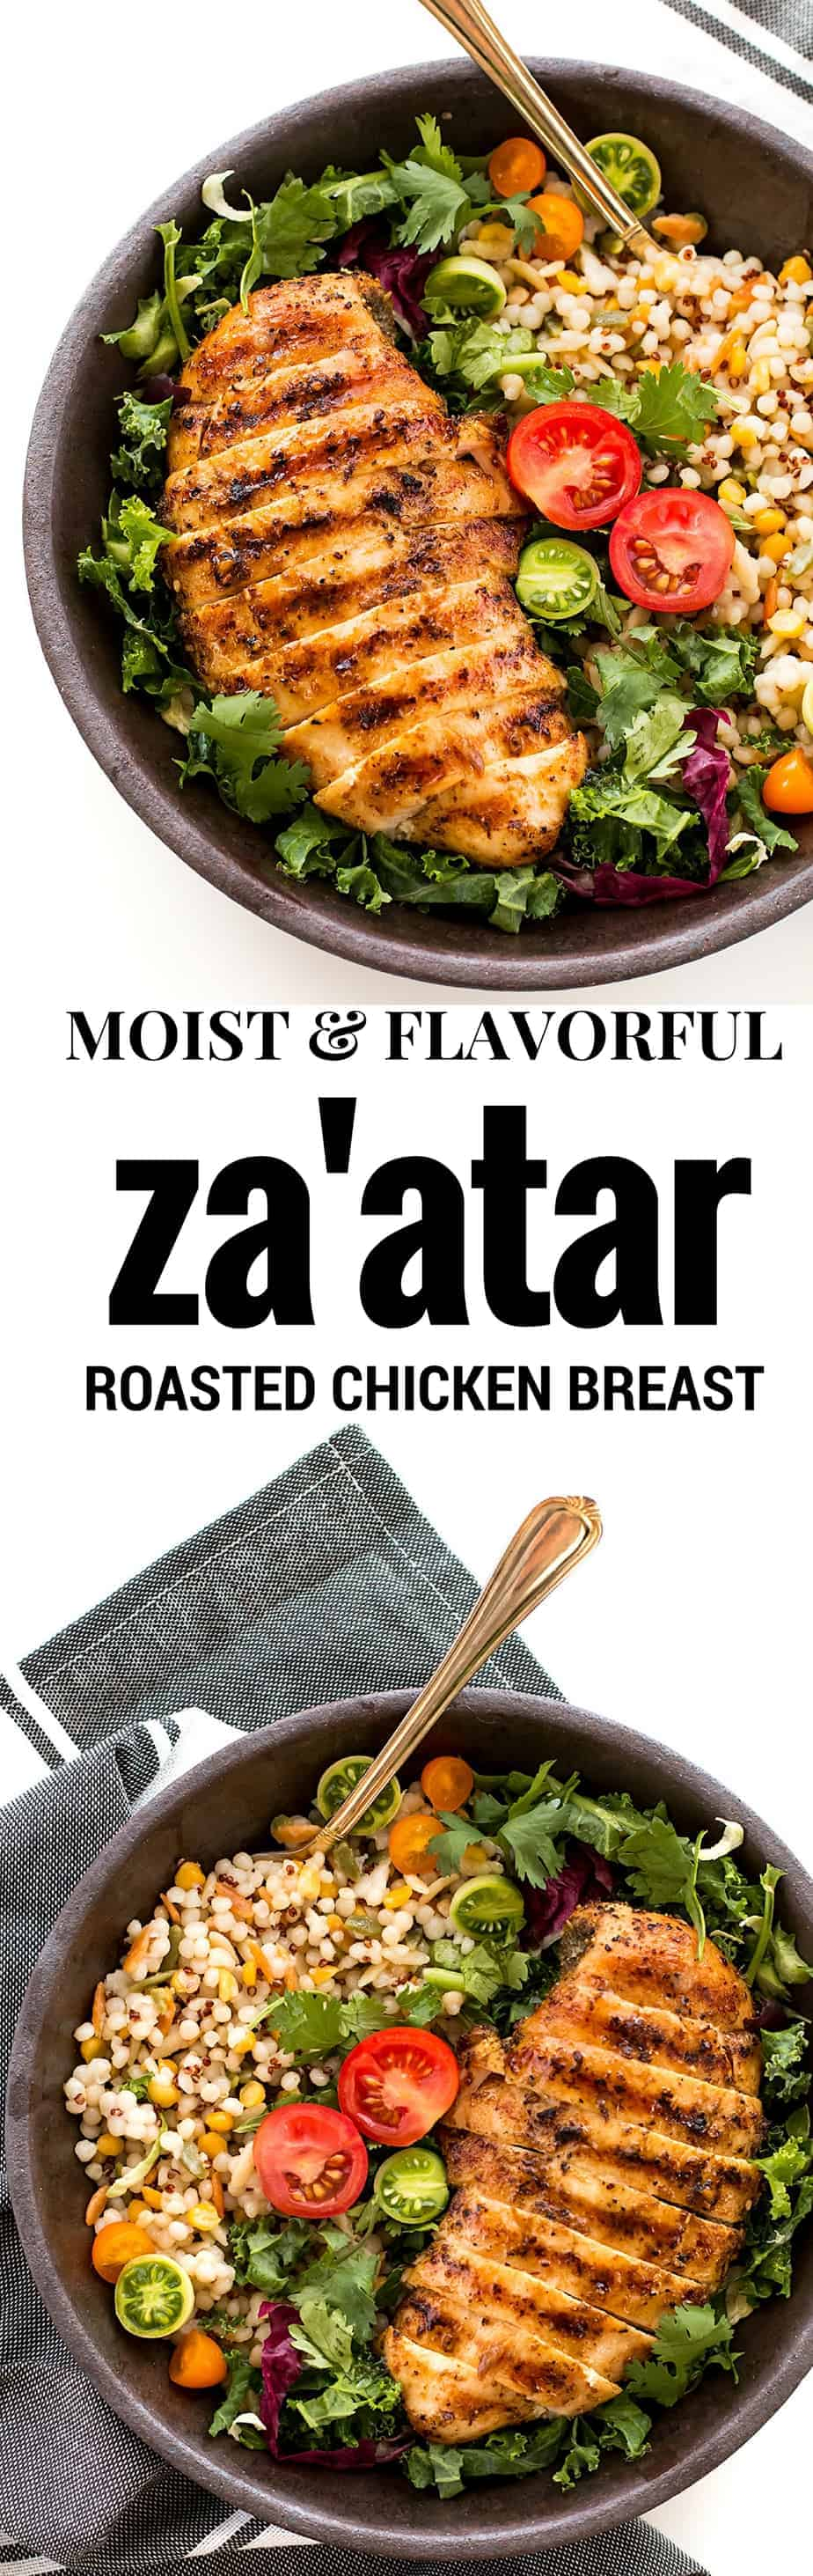 zaatar roasted chicken breast. Easy mediterranean inspired chicken recipe! Za'atar is a traditional mediterranean spice mix, which containing a combination of thyme, sesame seed, sumac (a tart and tangy spice made from ground sumac berries) and salt.